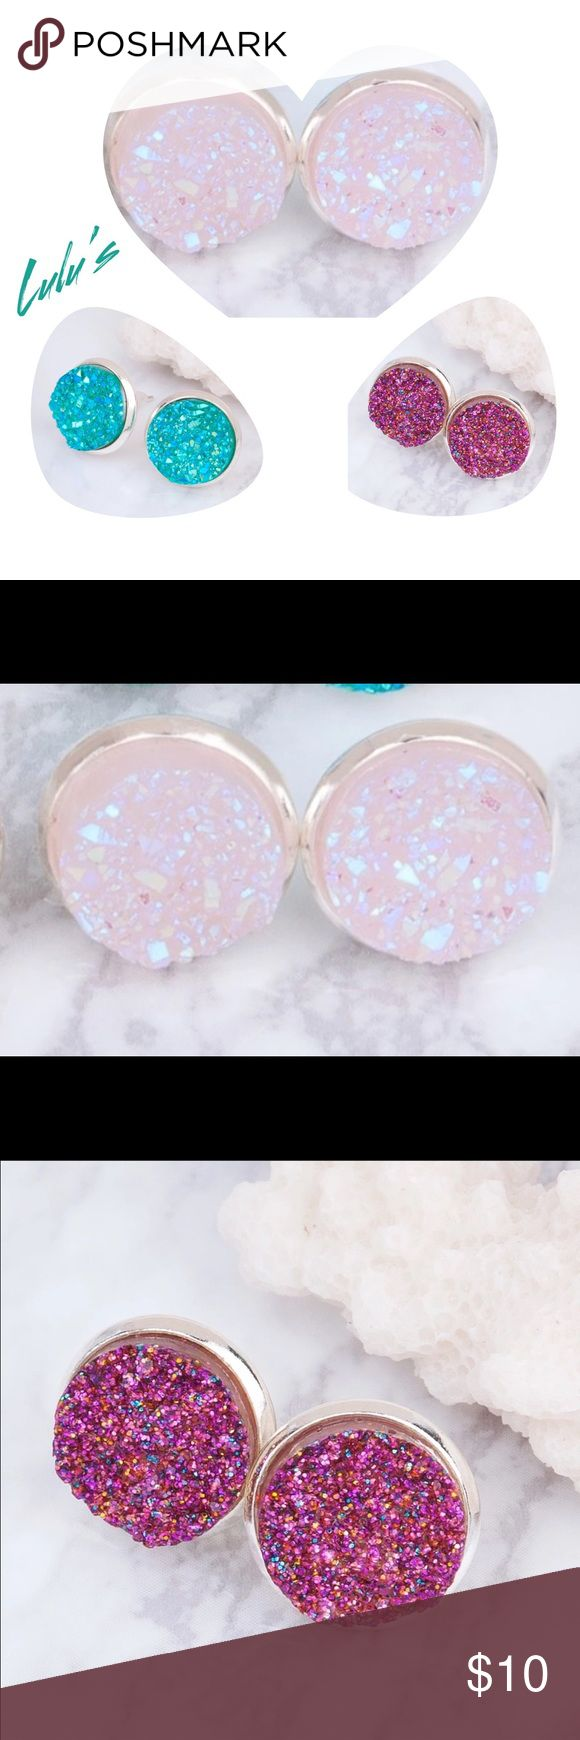 Druzy earrings Cute sparkly druzy earrings, vibrate colors, high quality and comfortable in the ear.          ♥️offers welcome        ♥️fast shipping         💔no trades 🚨price is per pair🚨 Item #001 Jewelry Earrings